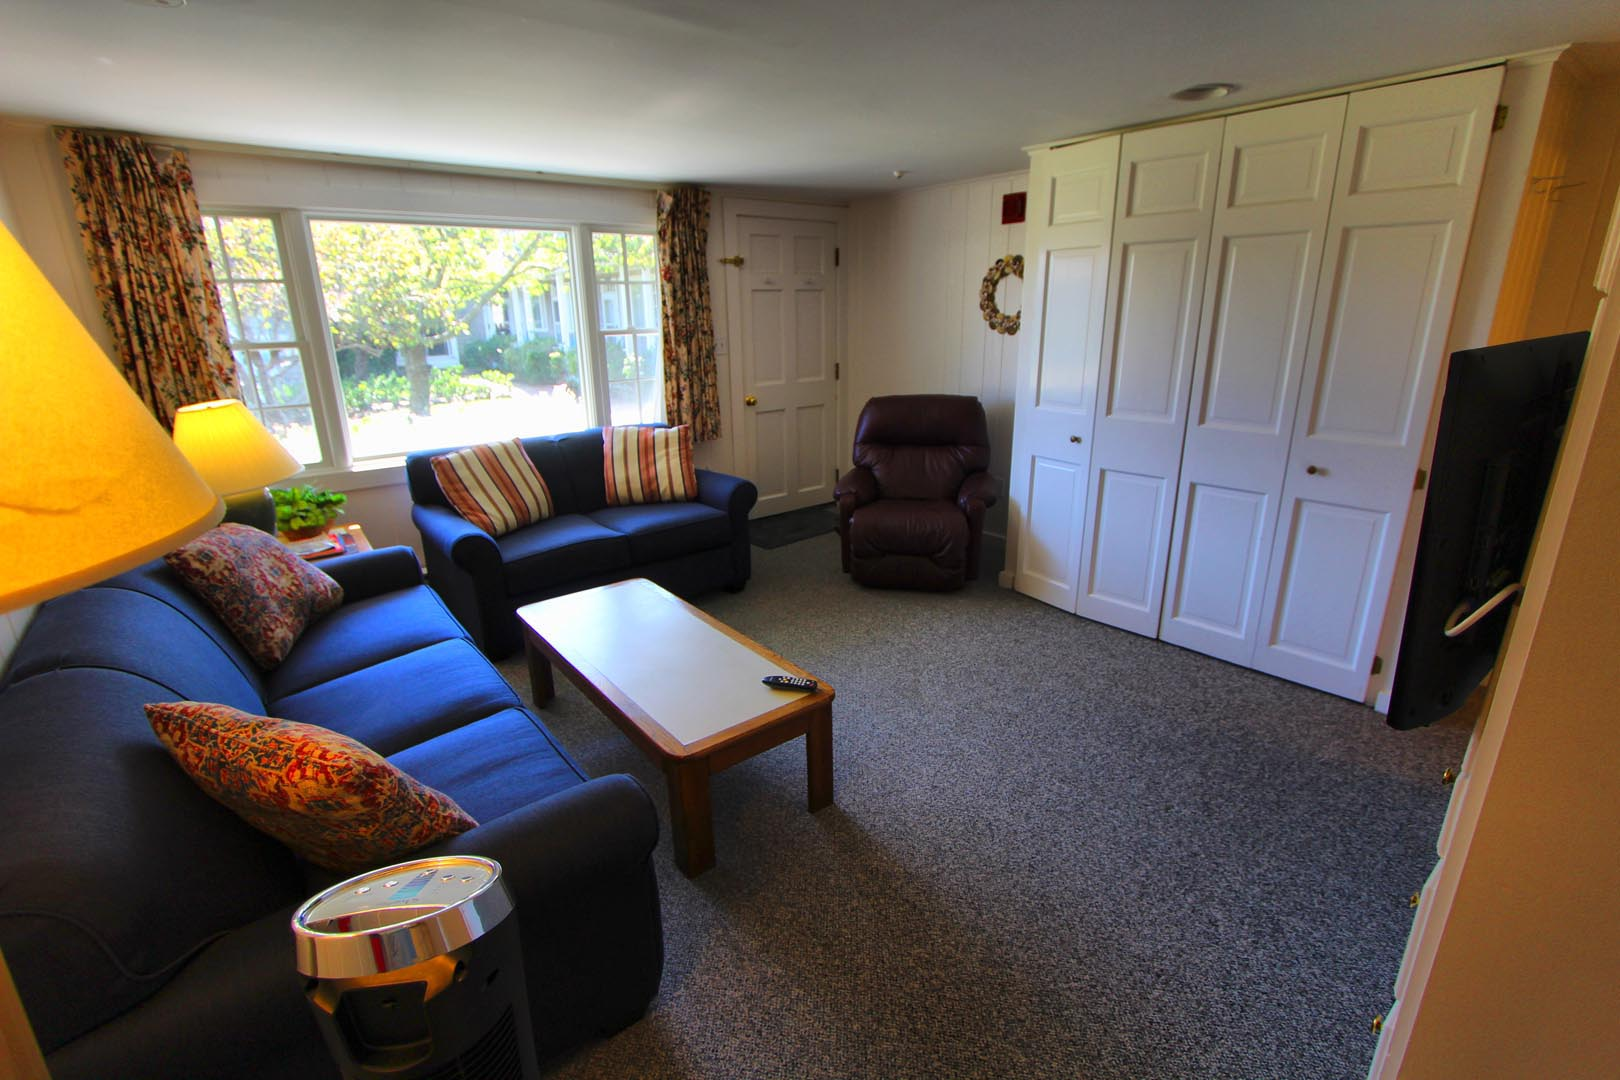 A cozy living room area at VRI's Brant Point Courtyard in Massachusetts.